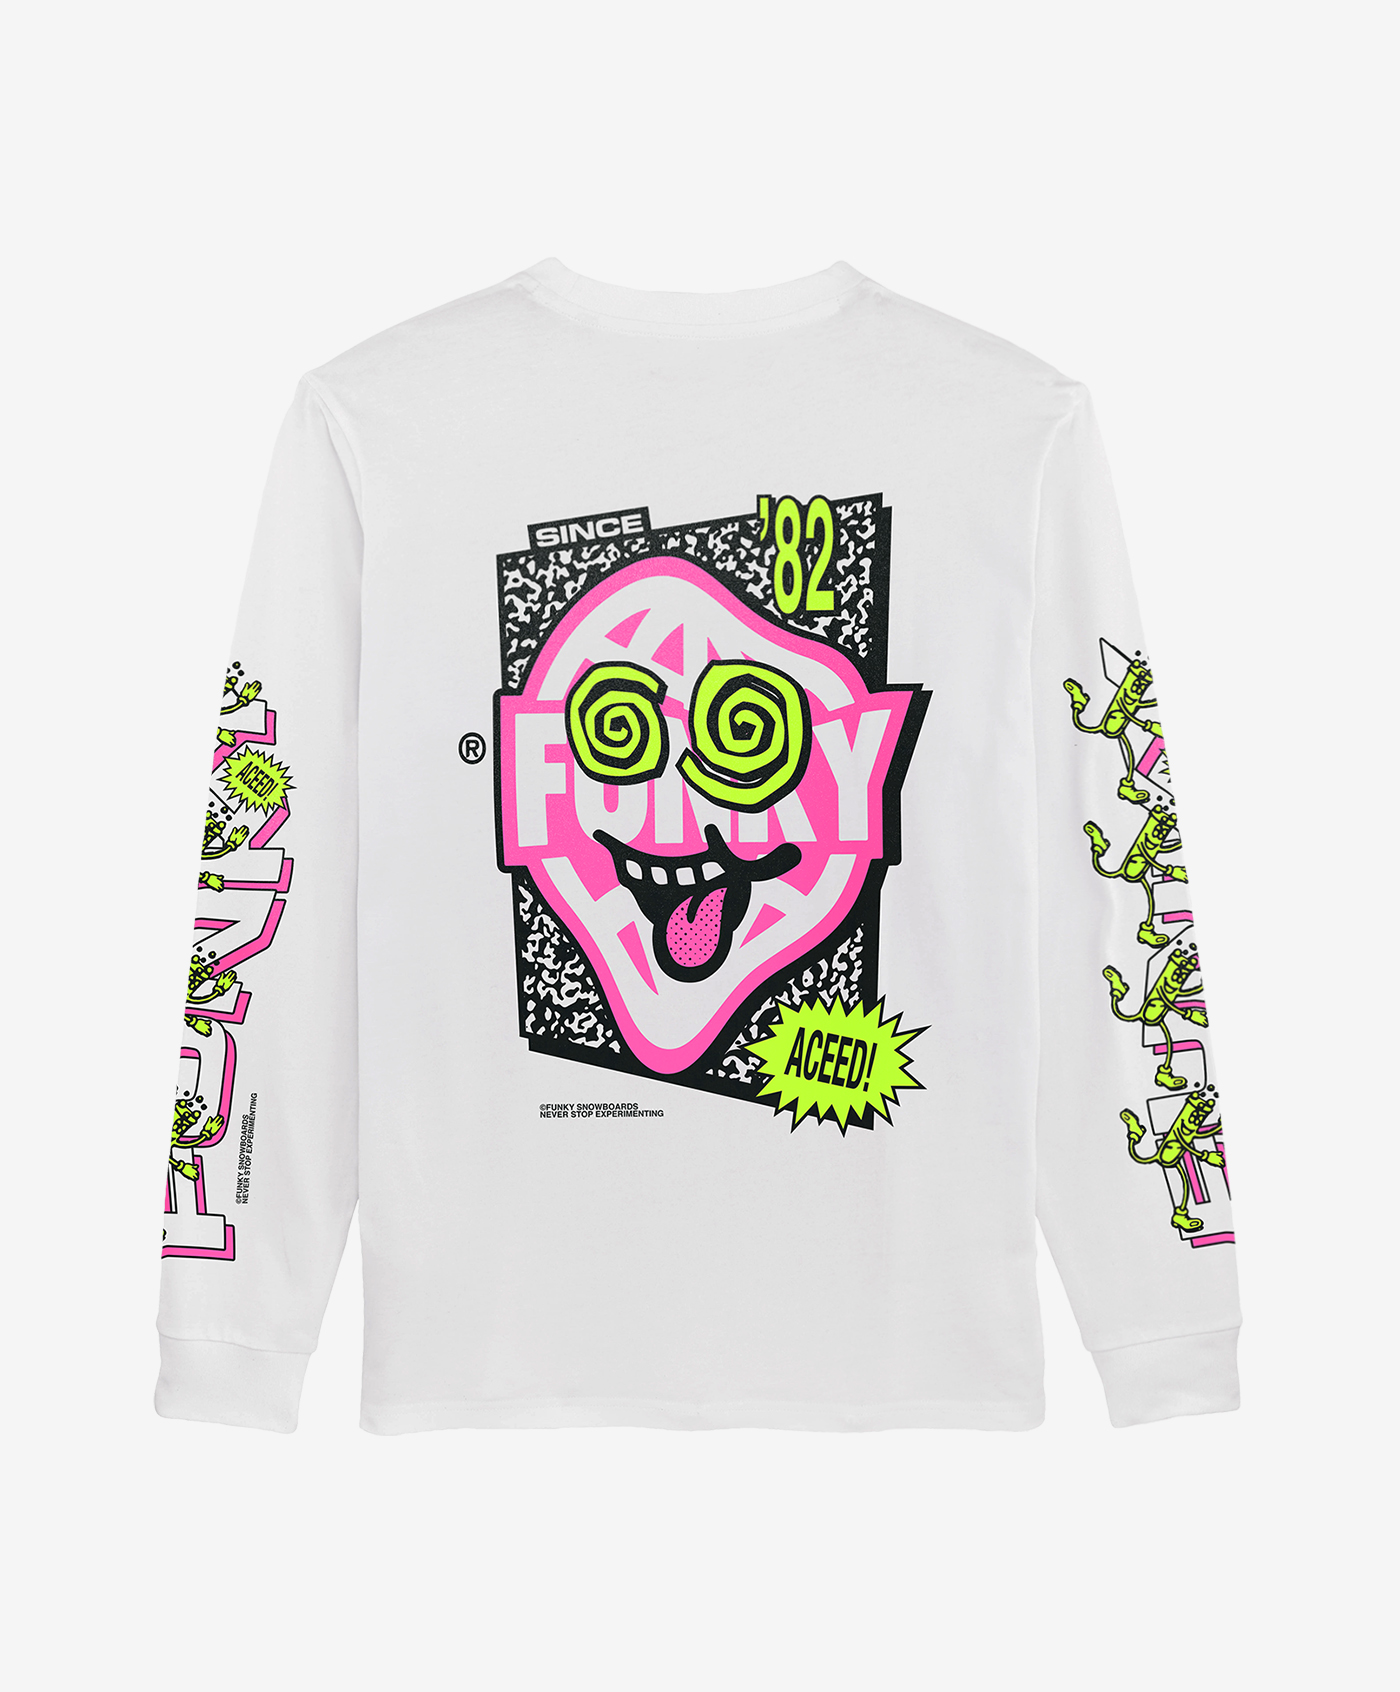 funky aceed long sleeve white back